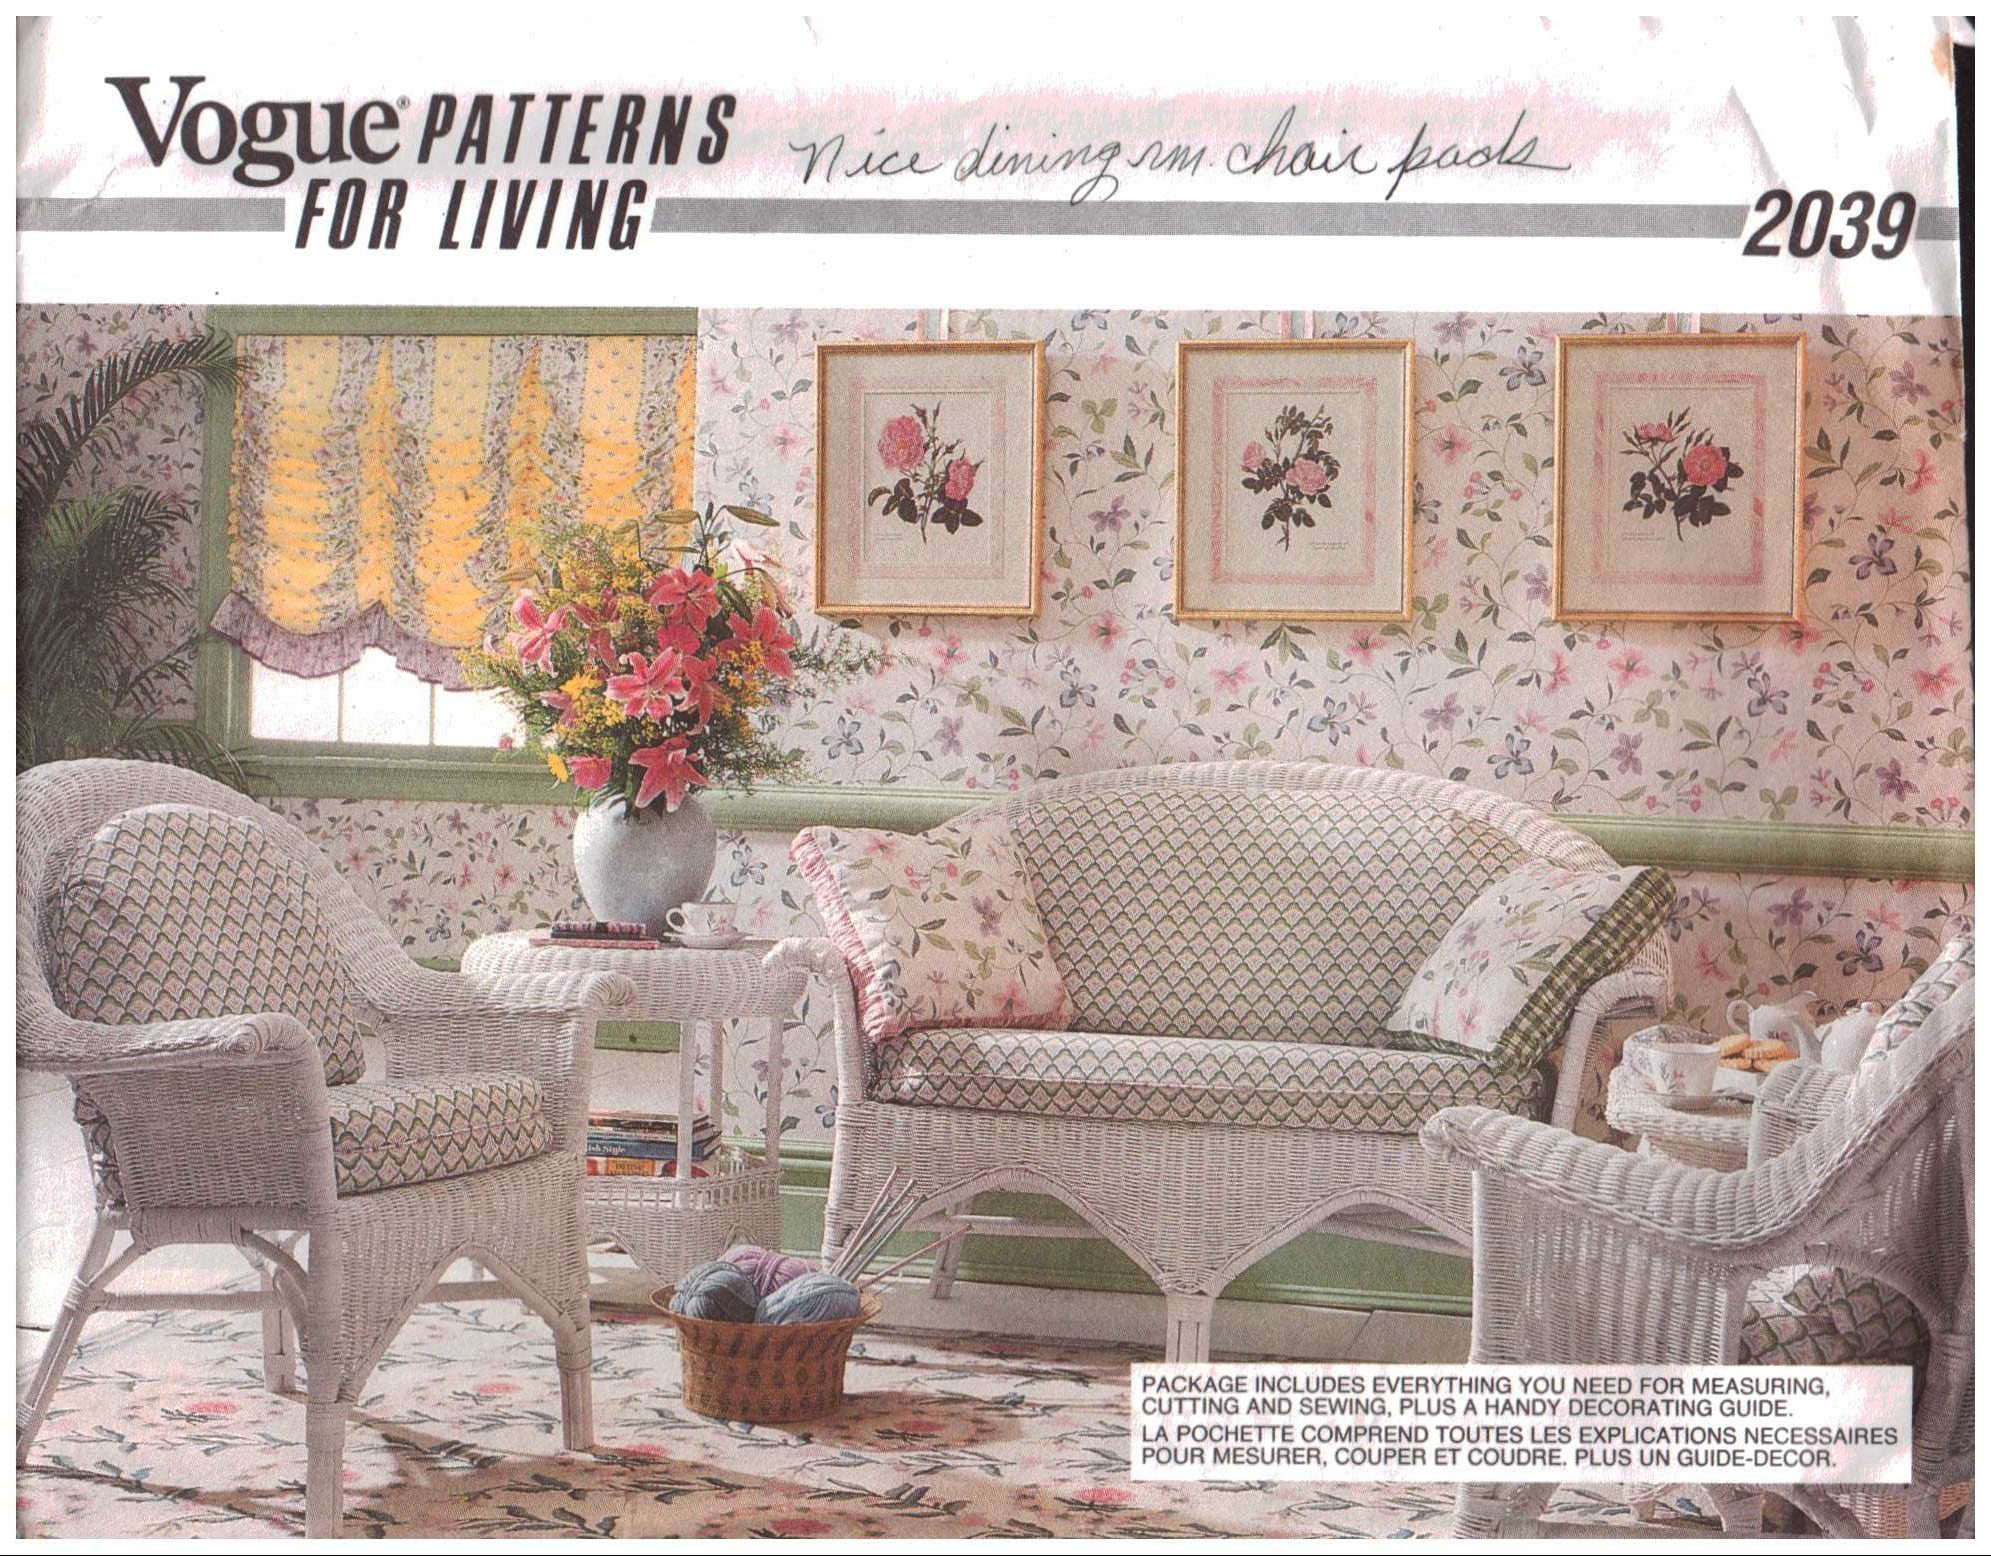 sewing patterns for chair cushions wooden porch rocking chairs vogue 2039 decor dinning room and pads size one uncut pattern